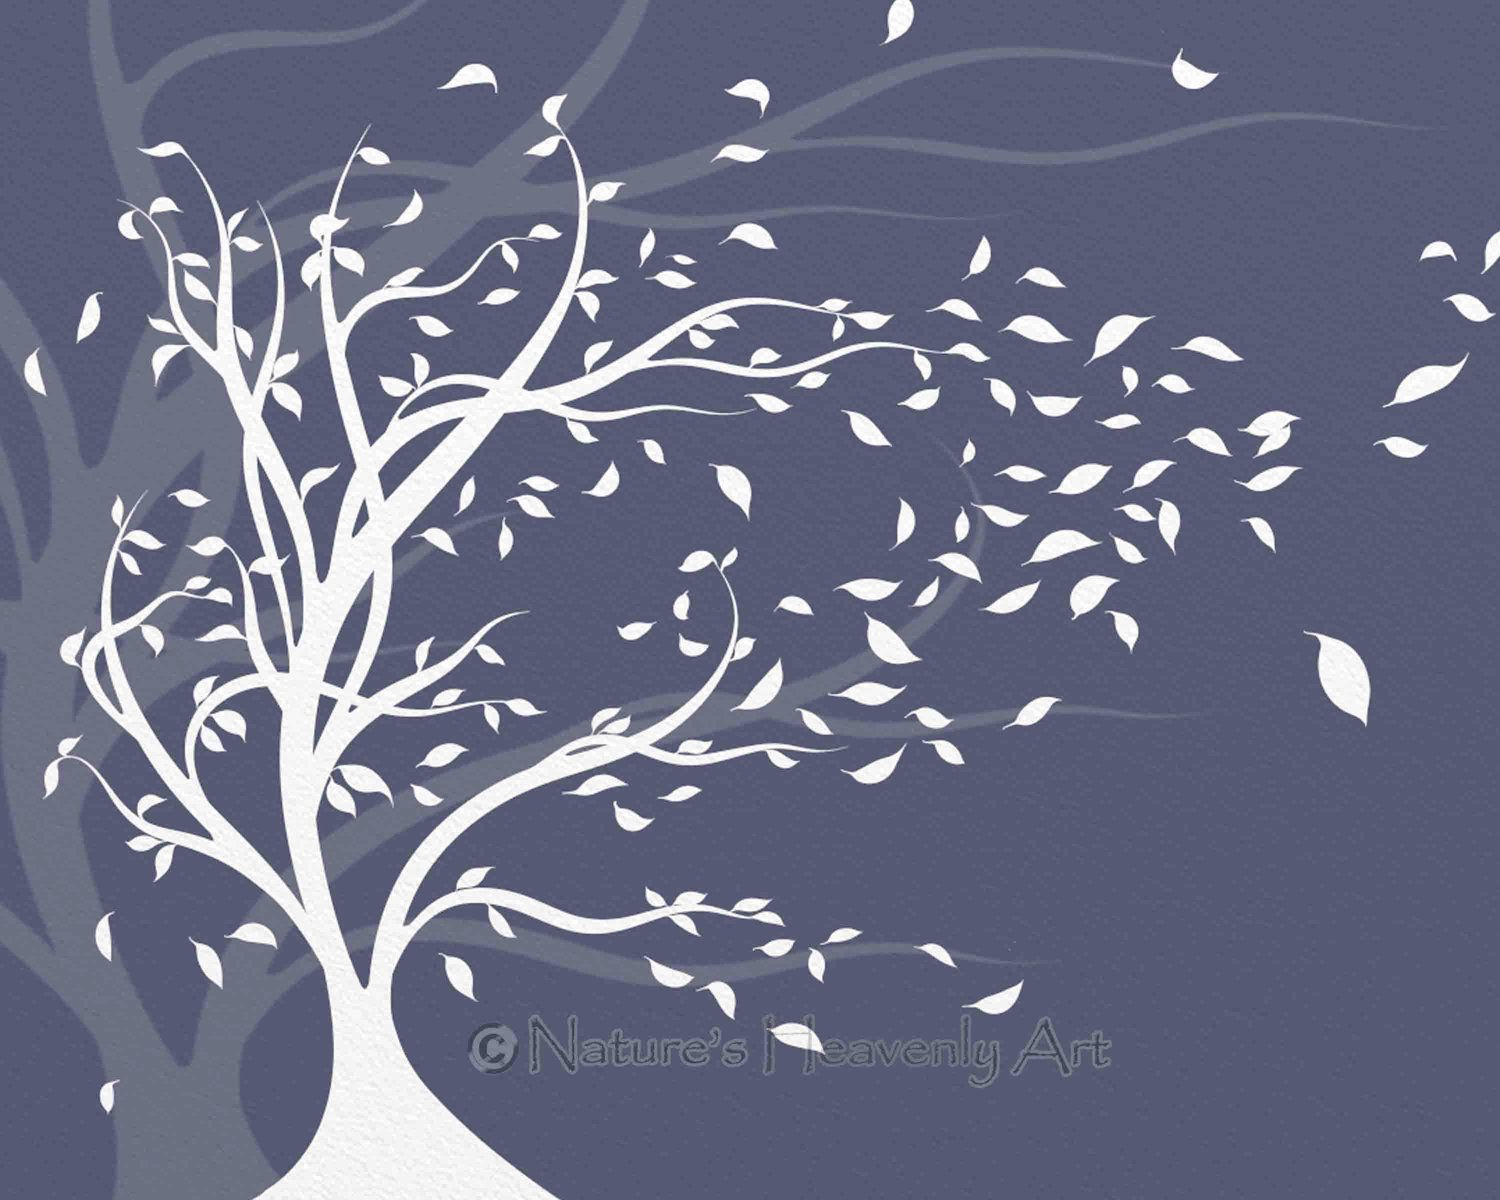 Tree Art Prints | Print, Wind Tree Wall Art, Blowing Leaves throughout Blowing Leaves Wall Decor (Image 27 of 30)